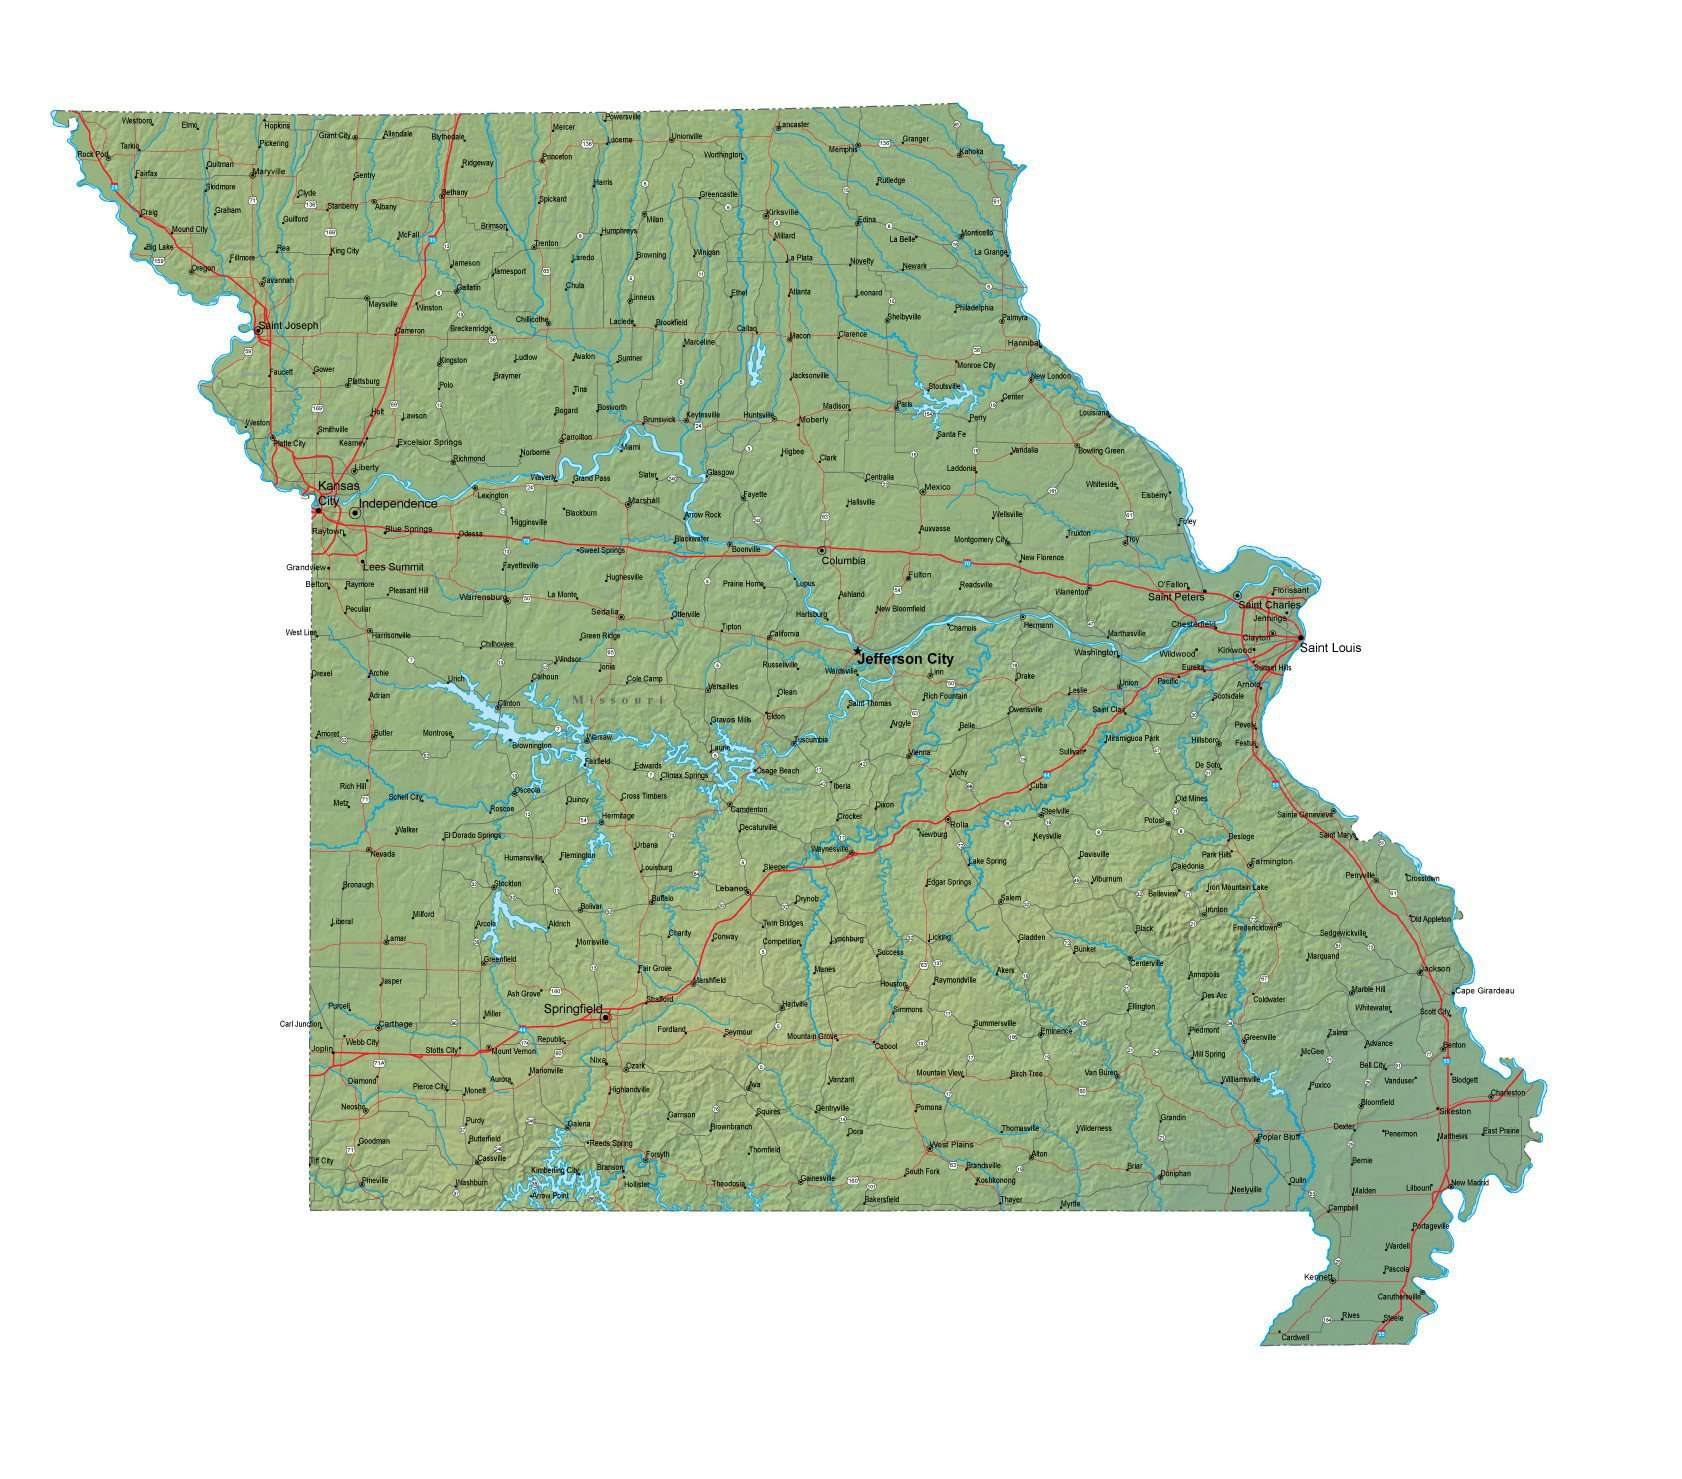 Reference Map Of Missouri USA Nations Online Project Missouri MO - Us map with cities and rivers